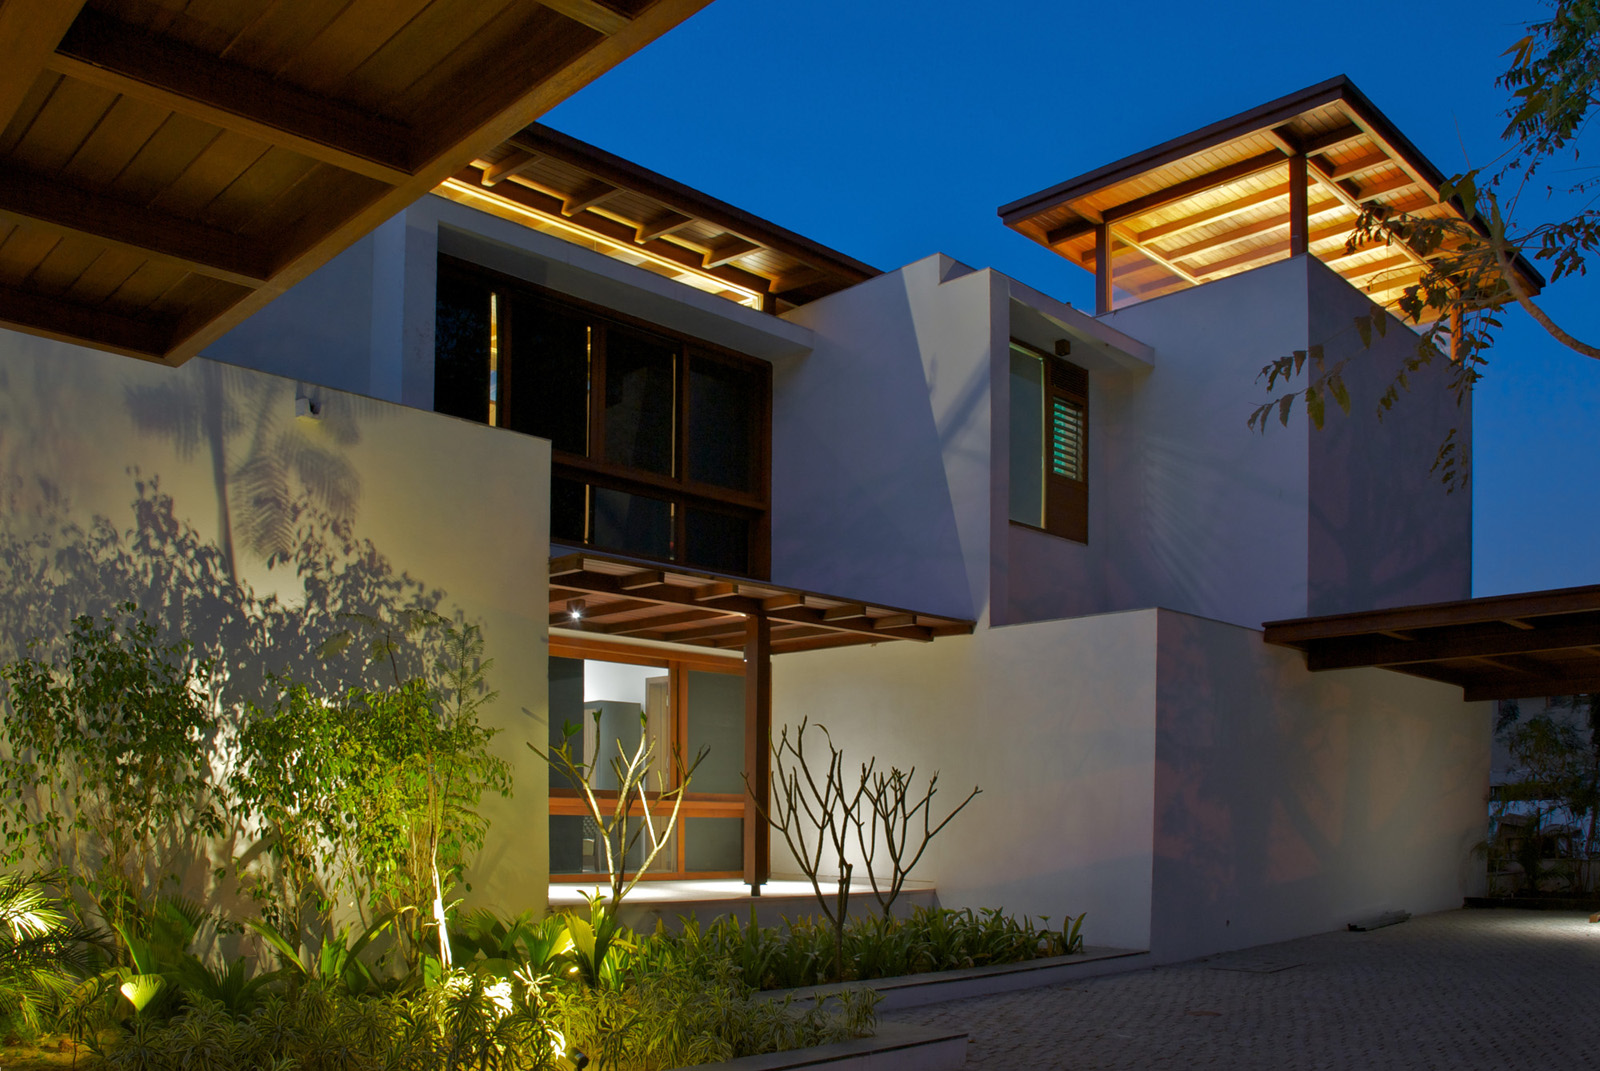 Timeless Contemporary House In India With Courtyard Zen Garden Idesignarch Interior Design